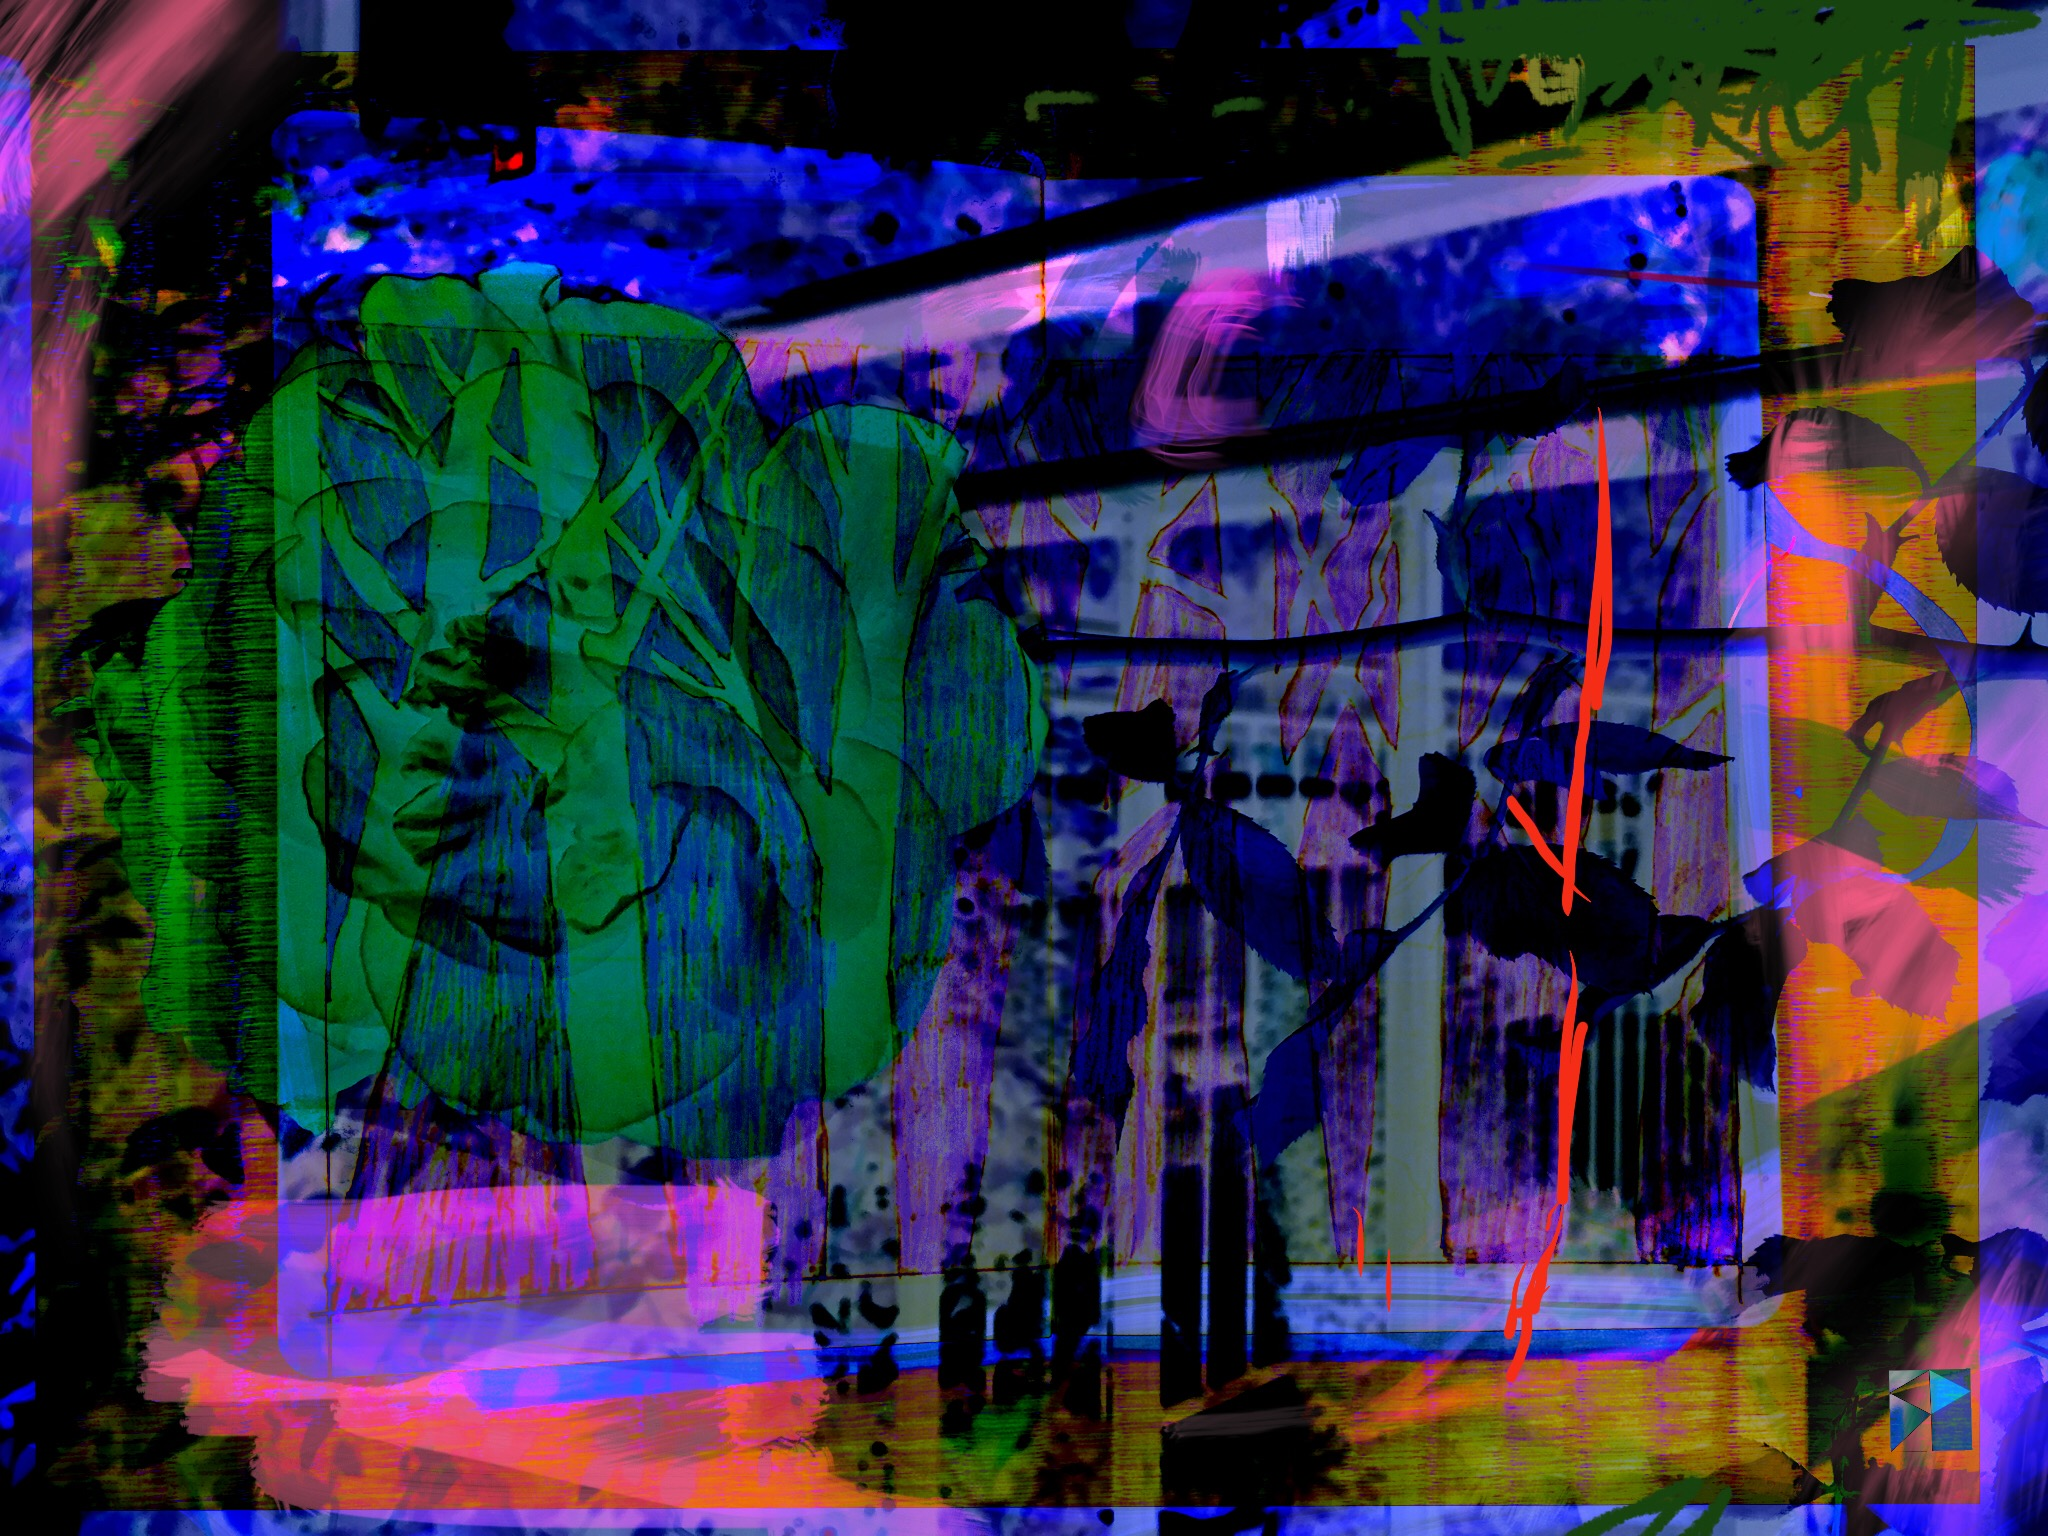 """Rose Forest   Electronics Painting, Sketchbook Scan, iPad, Procreate, Pencil 53, Photoshop. © 2016 dimensions variable to 48"""" x 60"""" giclee limited edition prints available contact the artist"""